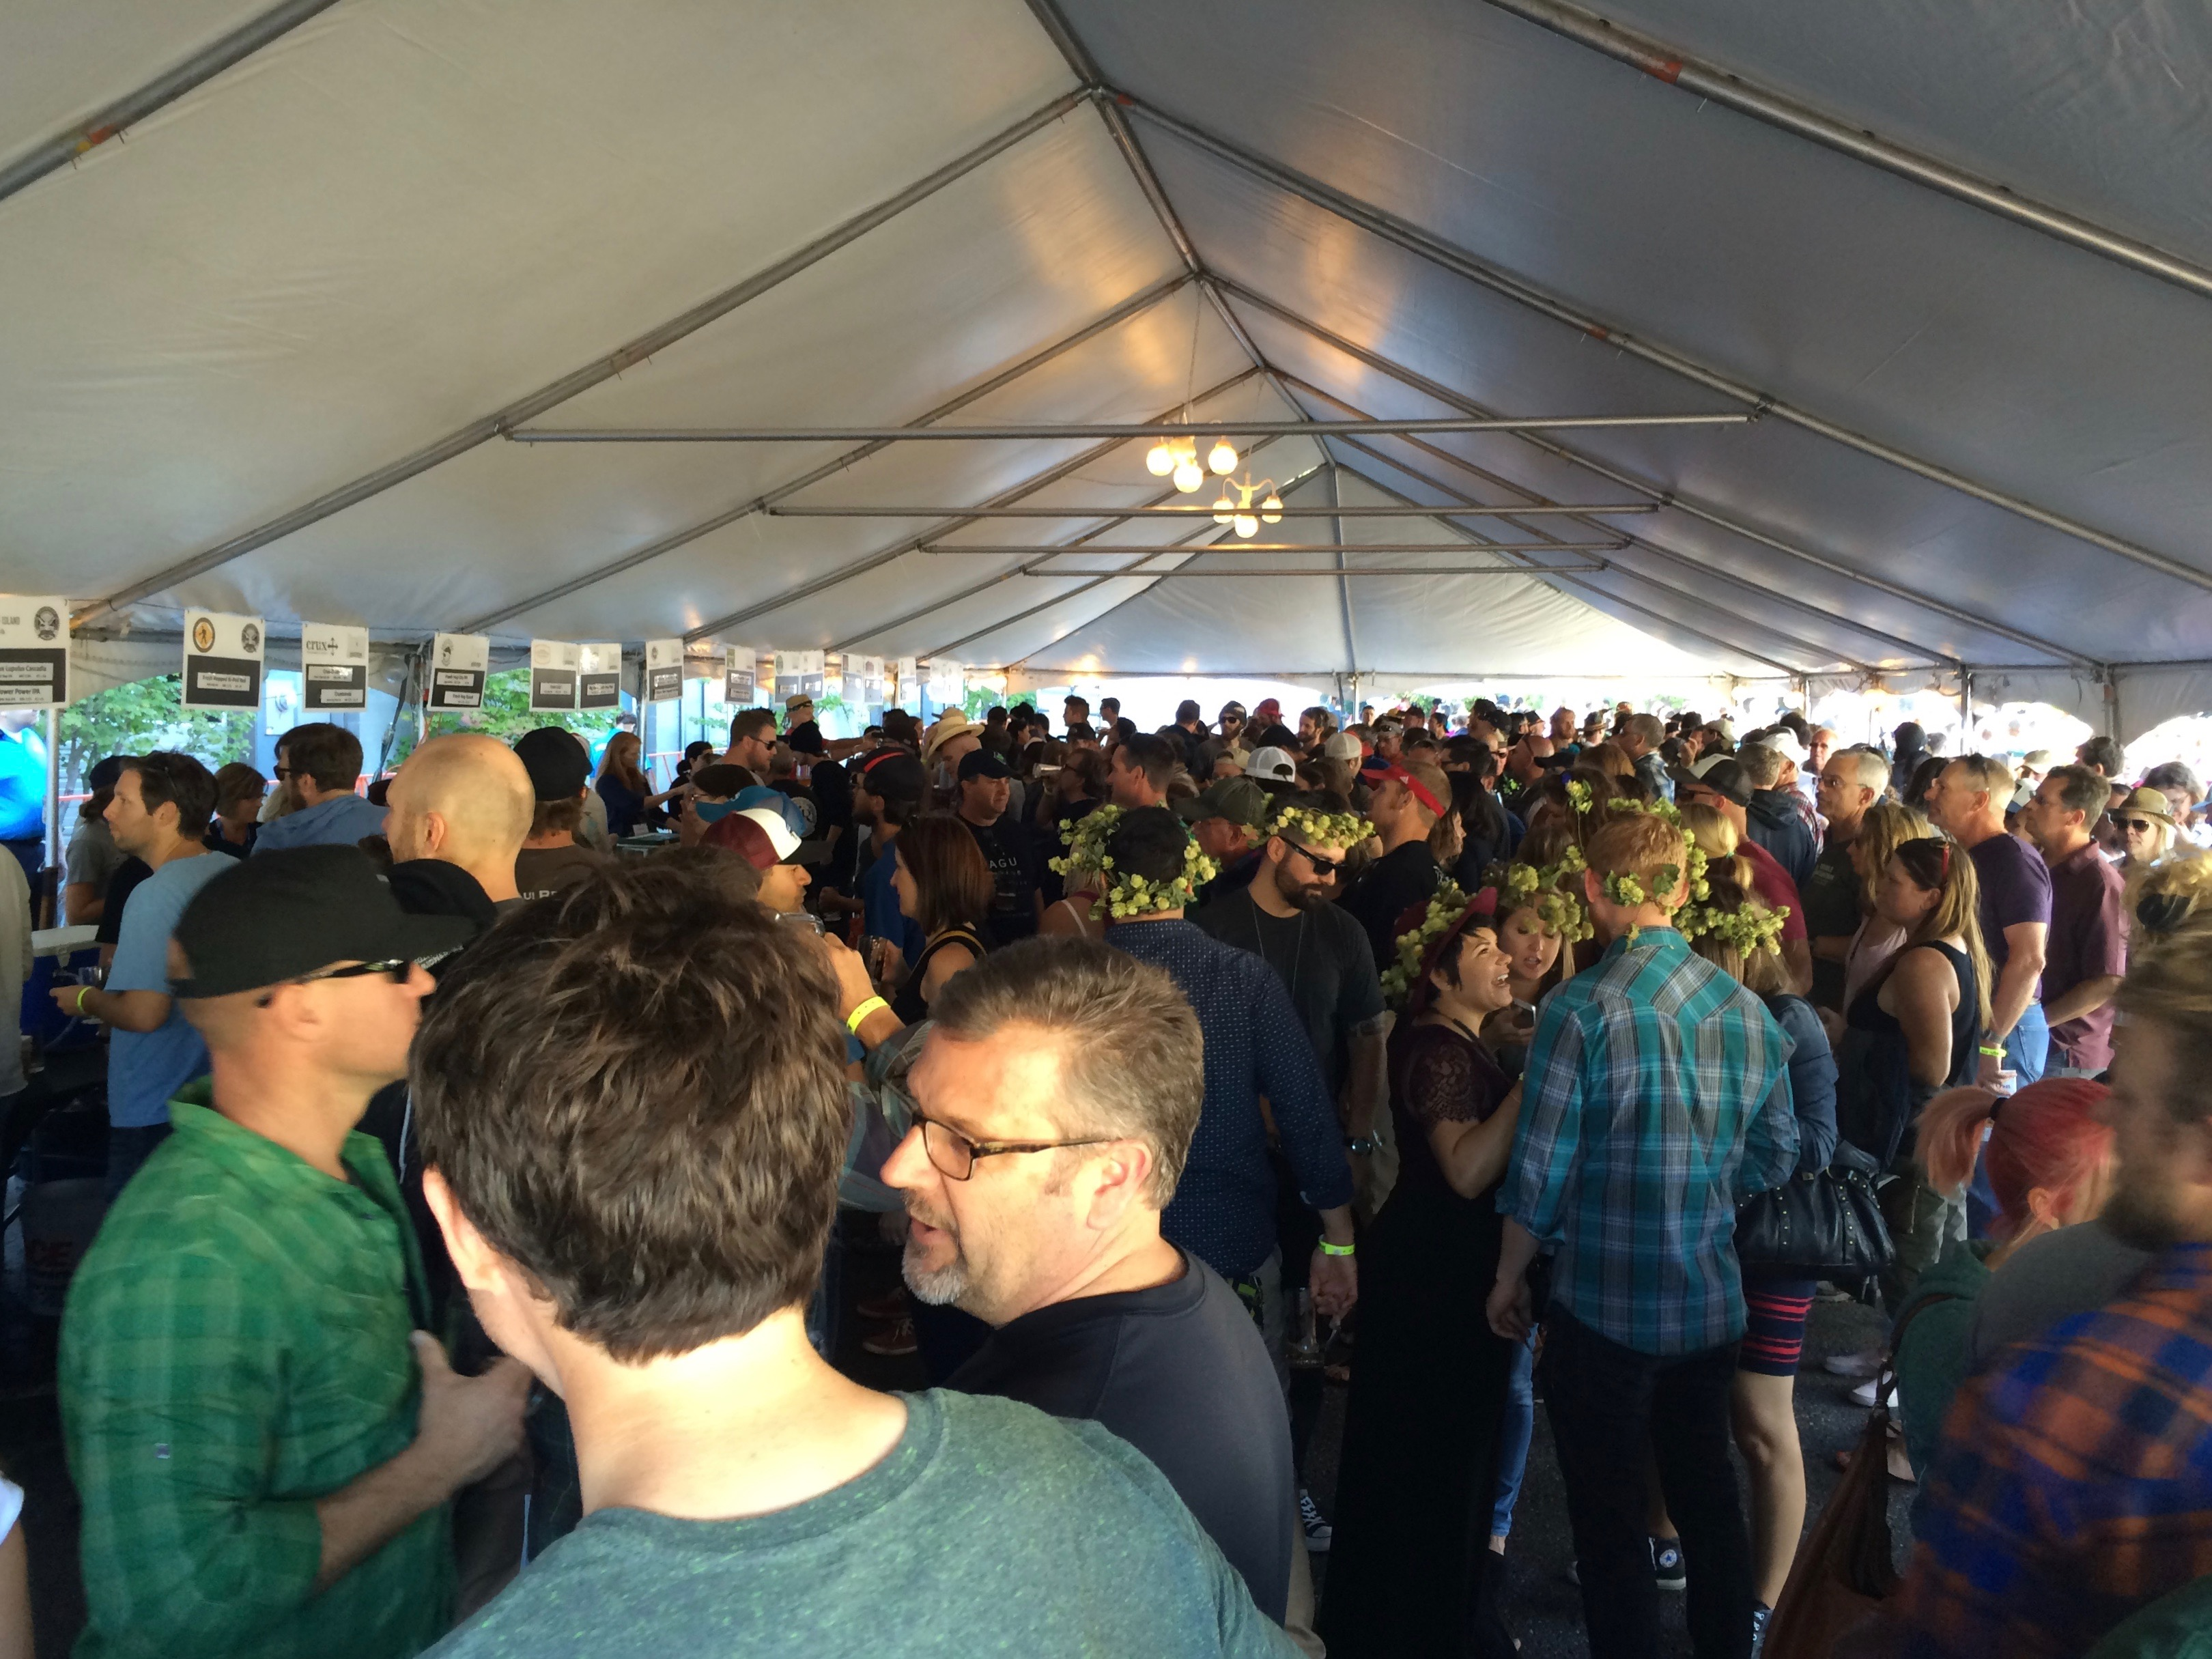 Inside the beer tent at the 2015 Hood River Hops Fest.